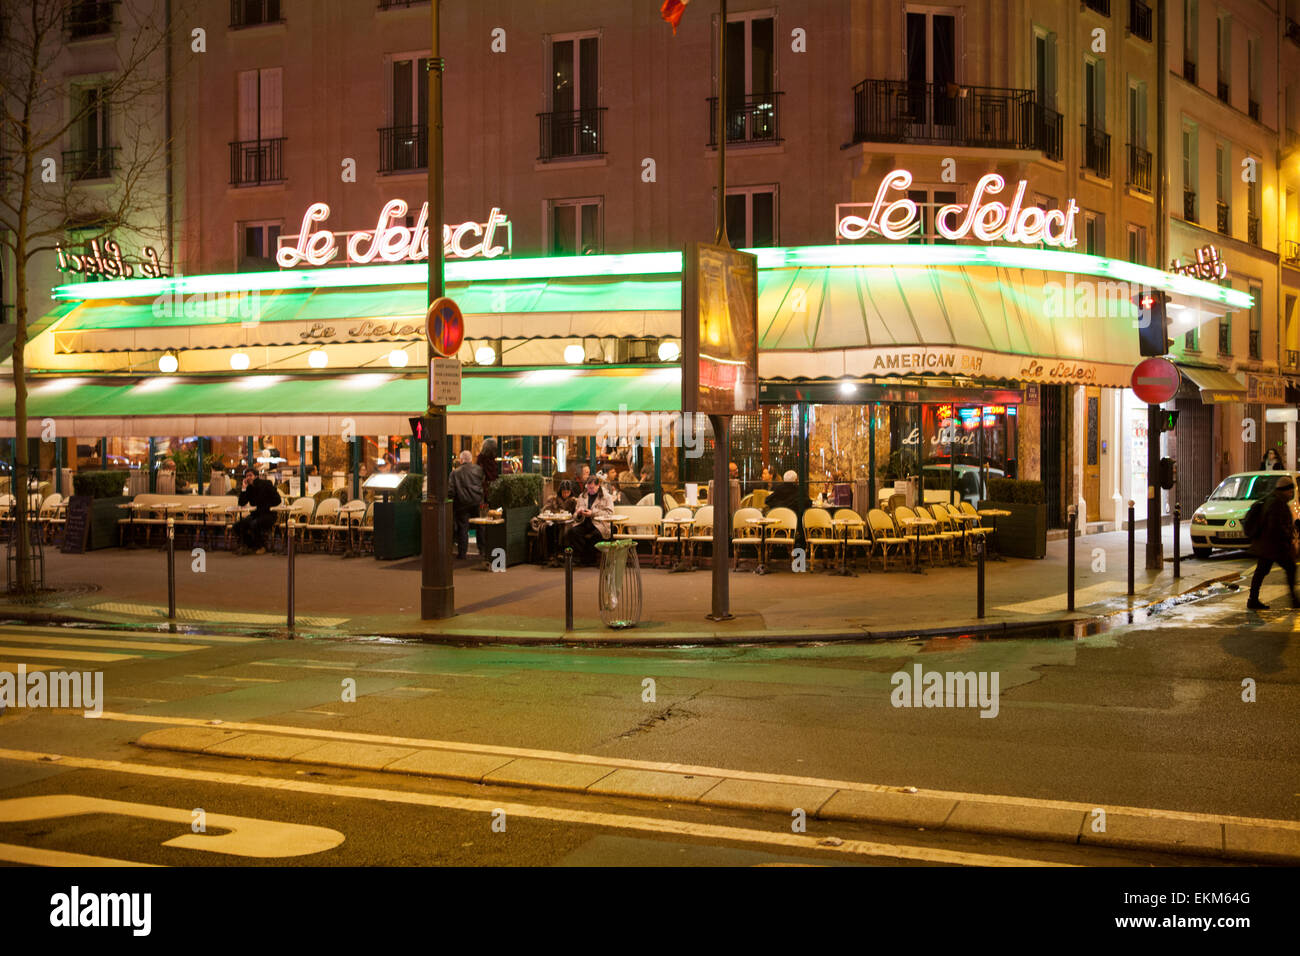 Le Select a famous cafe in Montparnasse, Paris - Stock Image